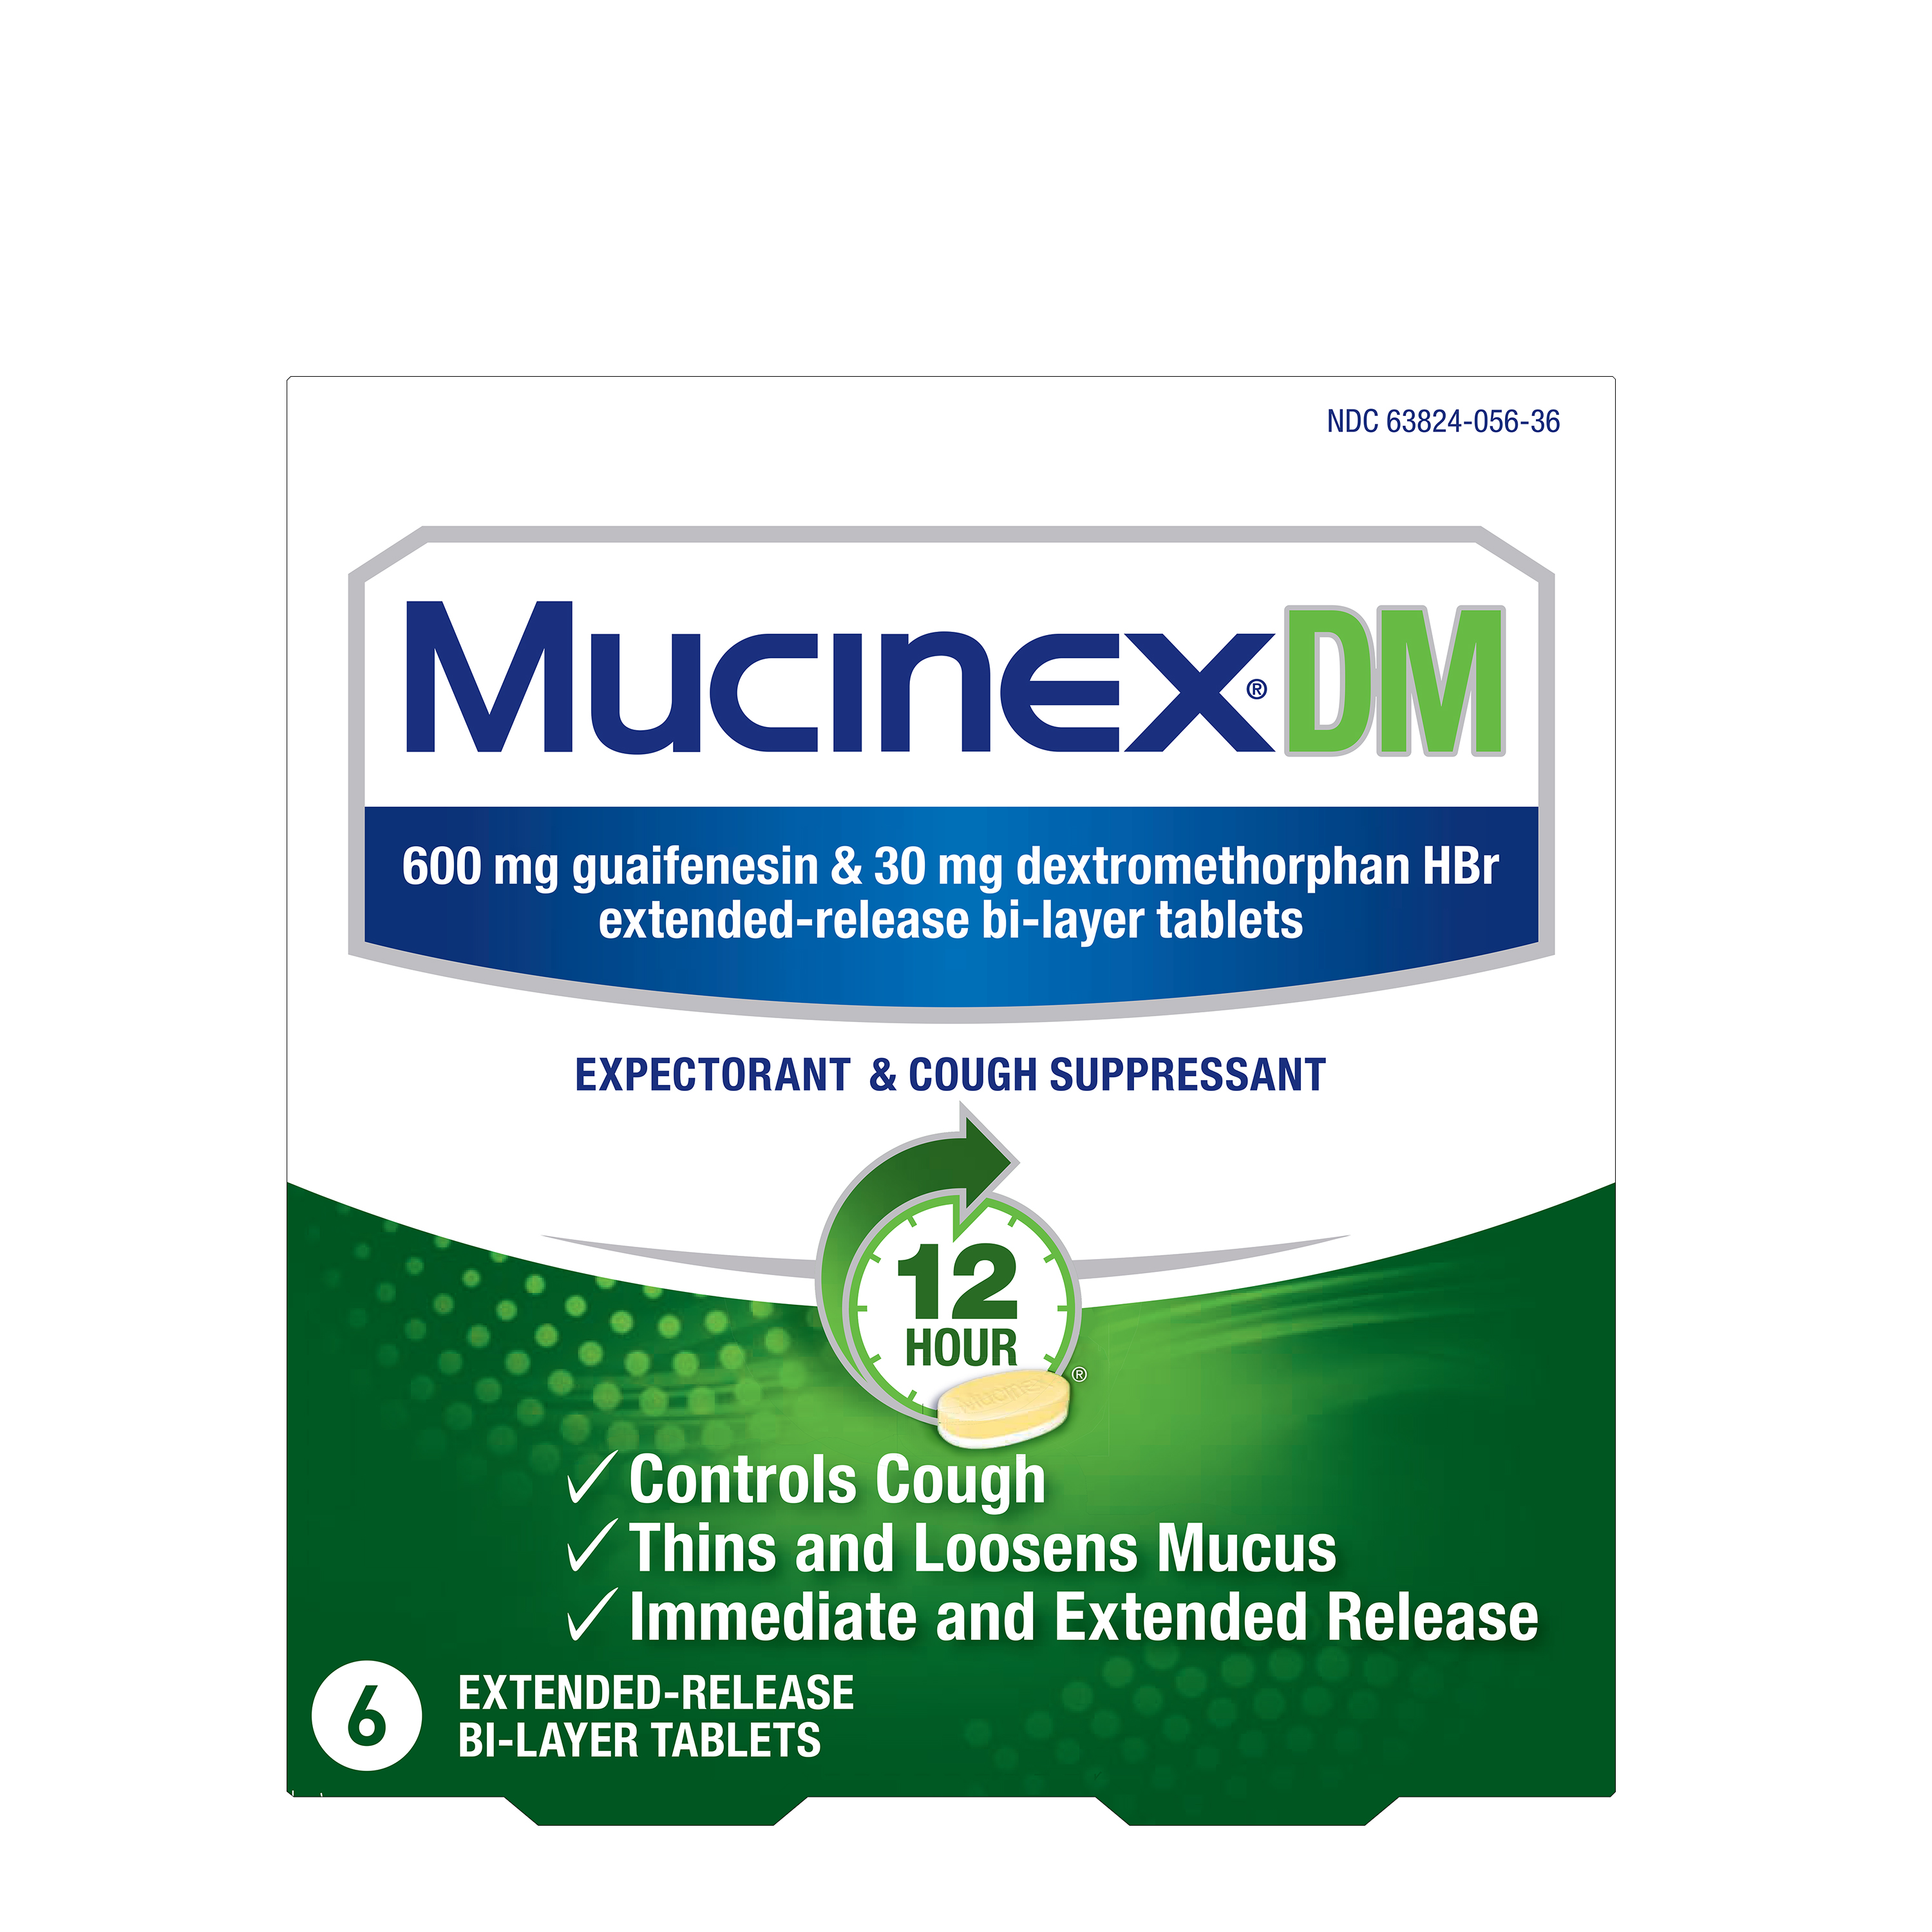 MUCINEX® 12 Hour DM - 600 mg Guaifenesin, 30 mg Dextromethorphan HBr